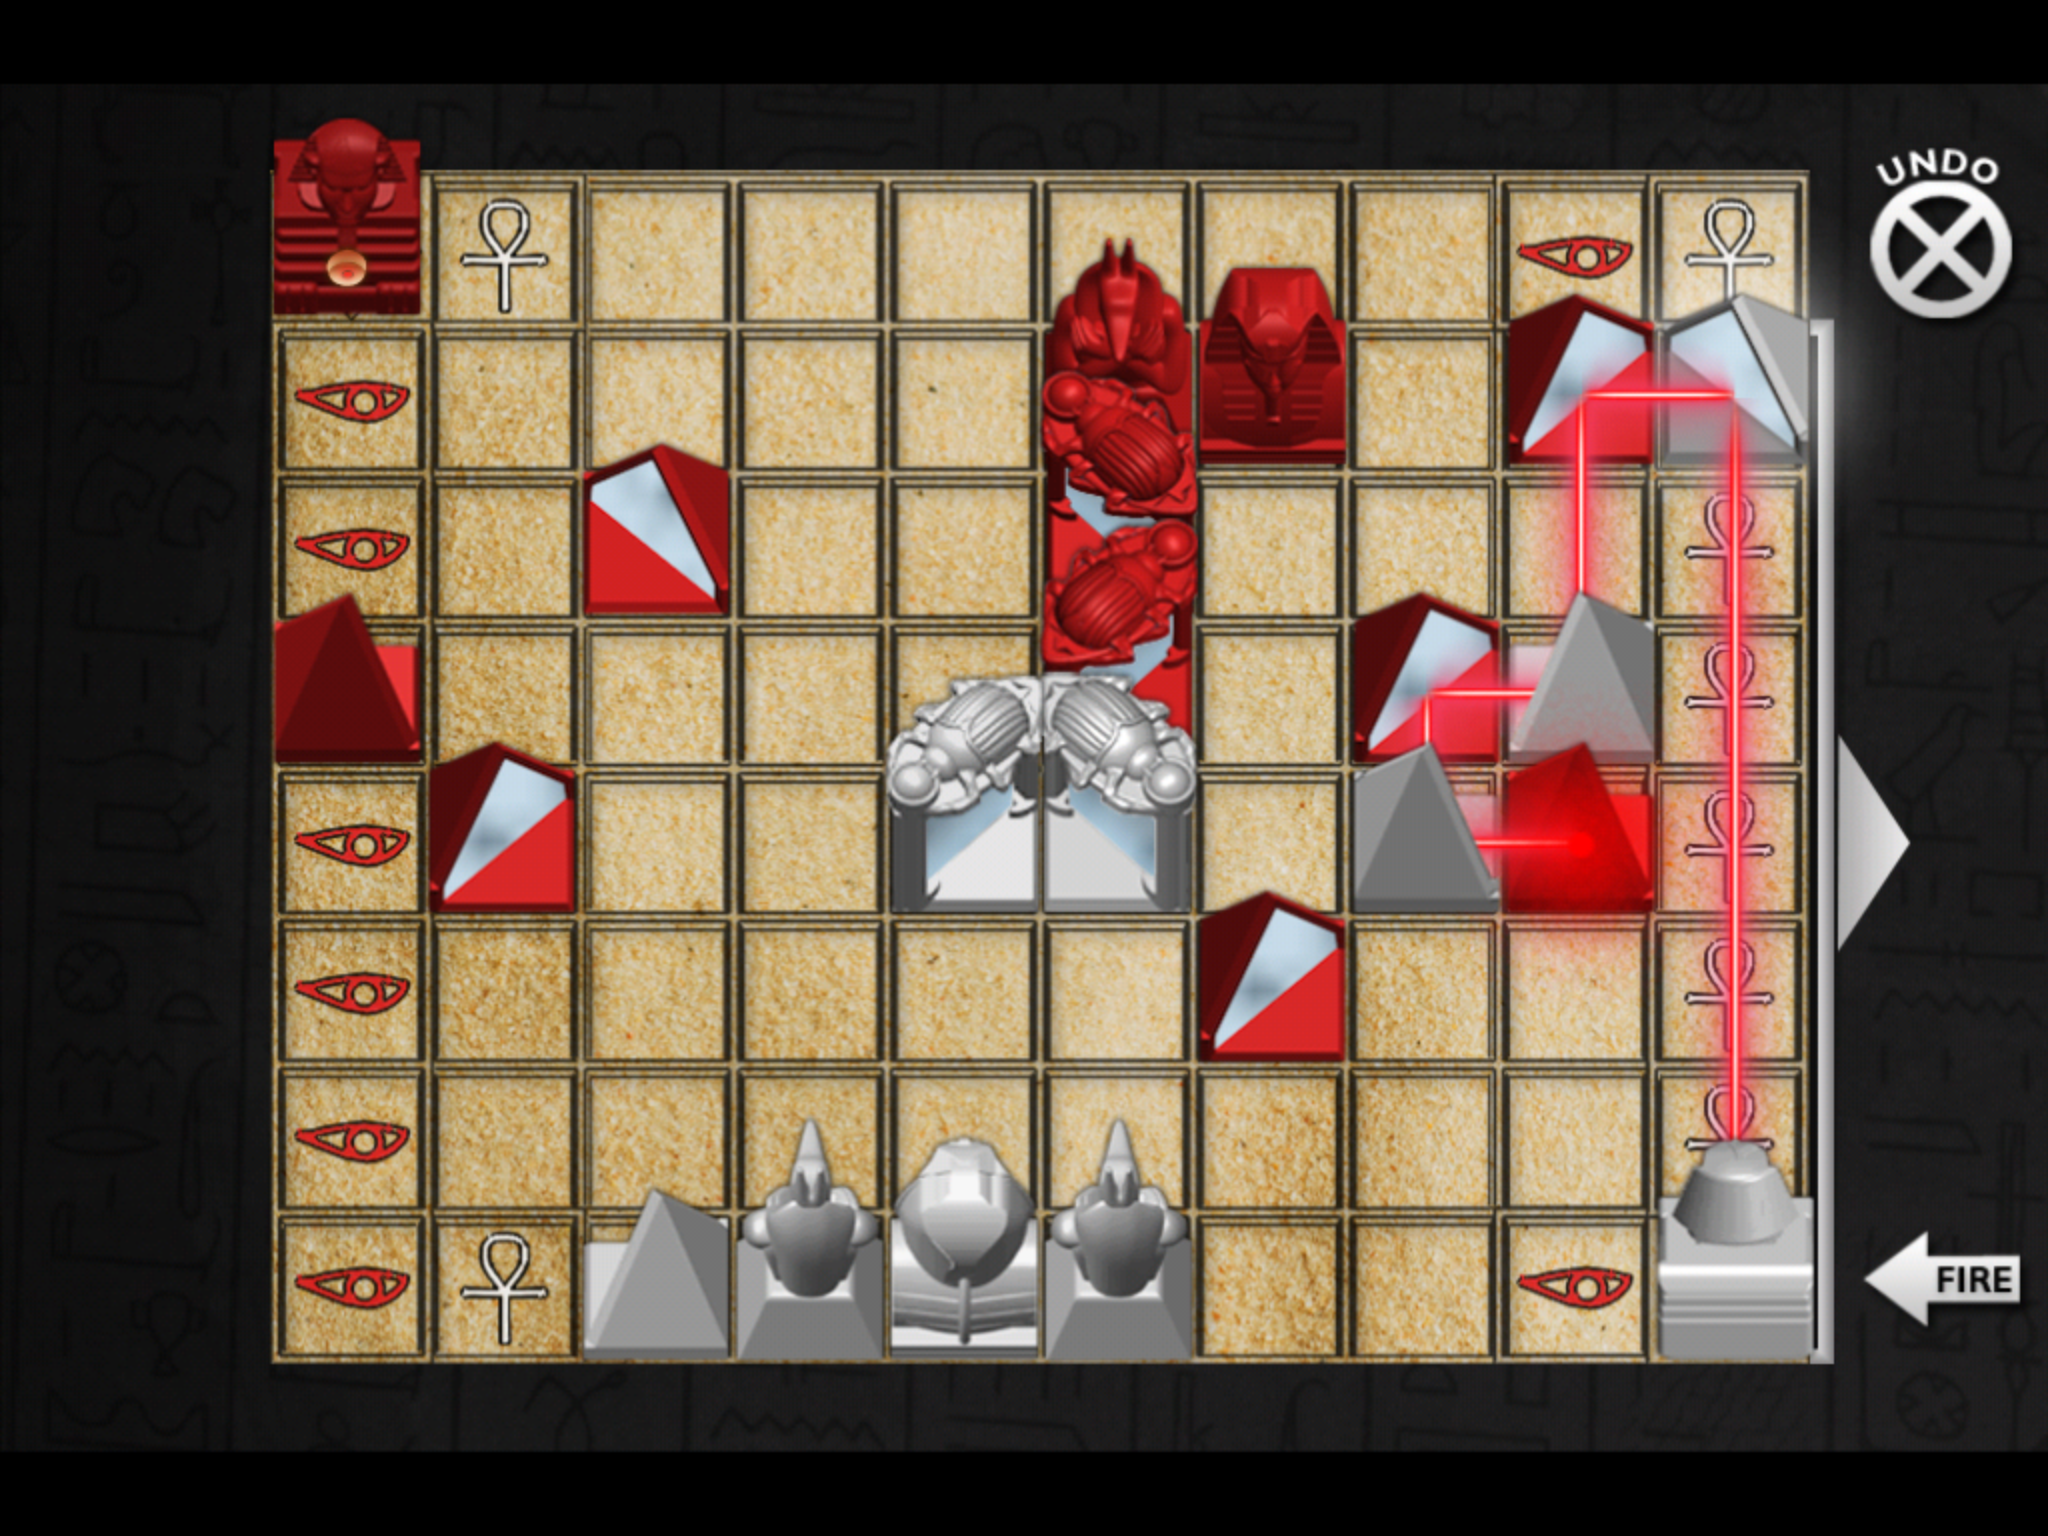 KHET 2X ($8 Universal / $4 iPhone, 1-2p local or asynchronous online ...